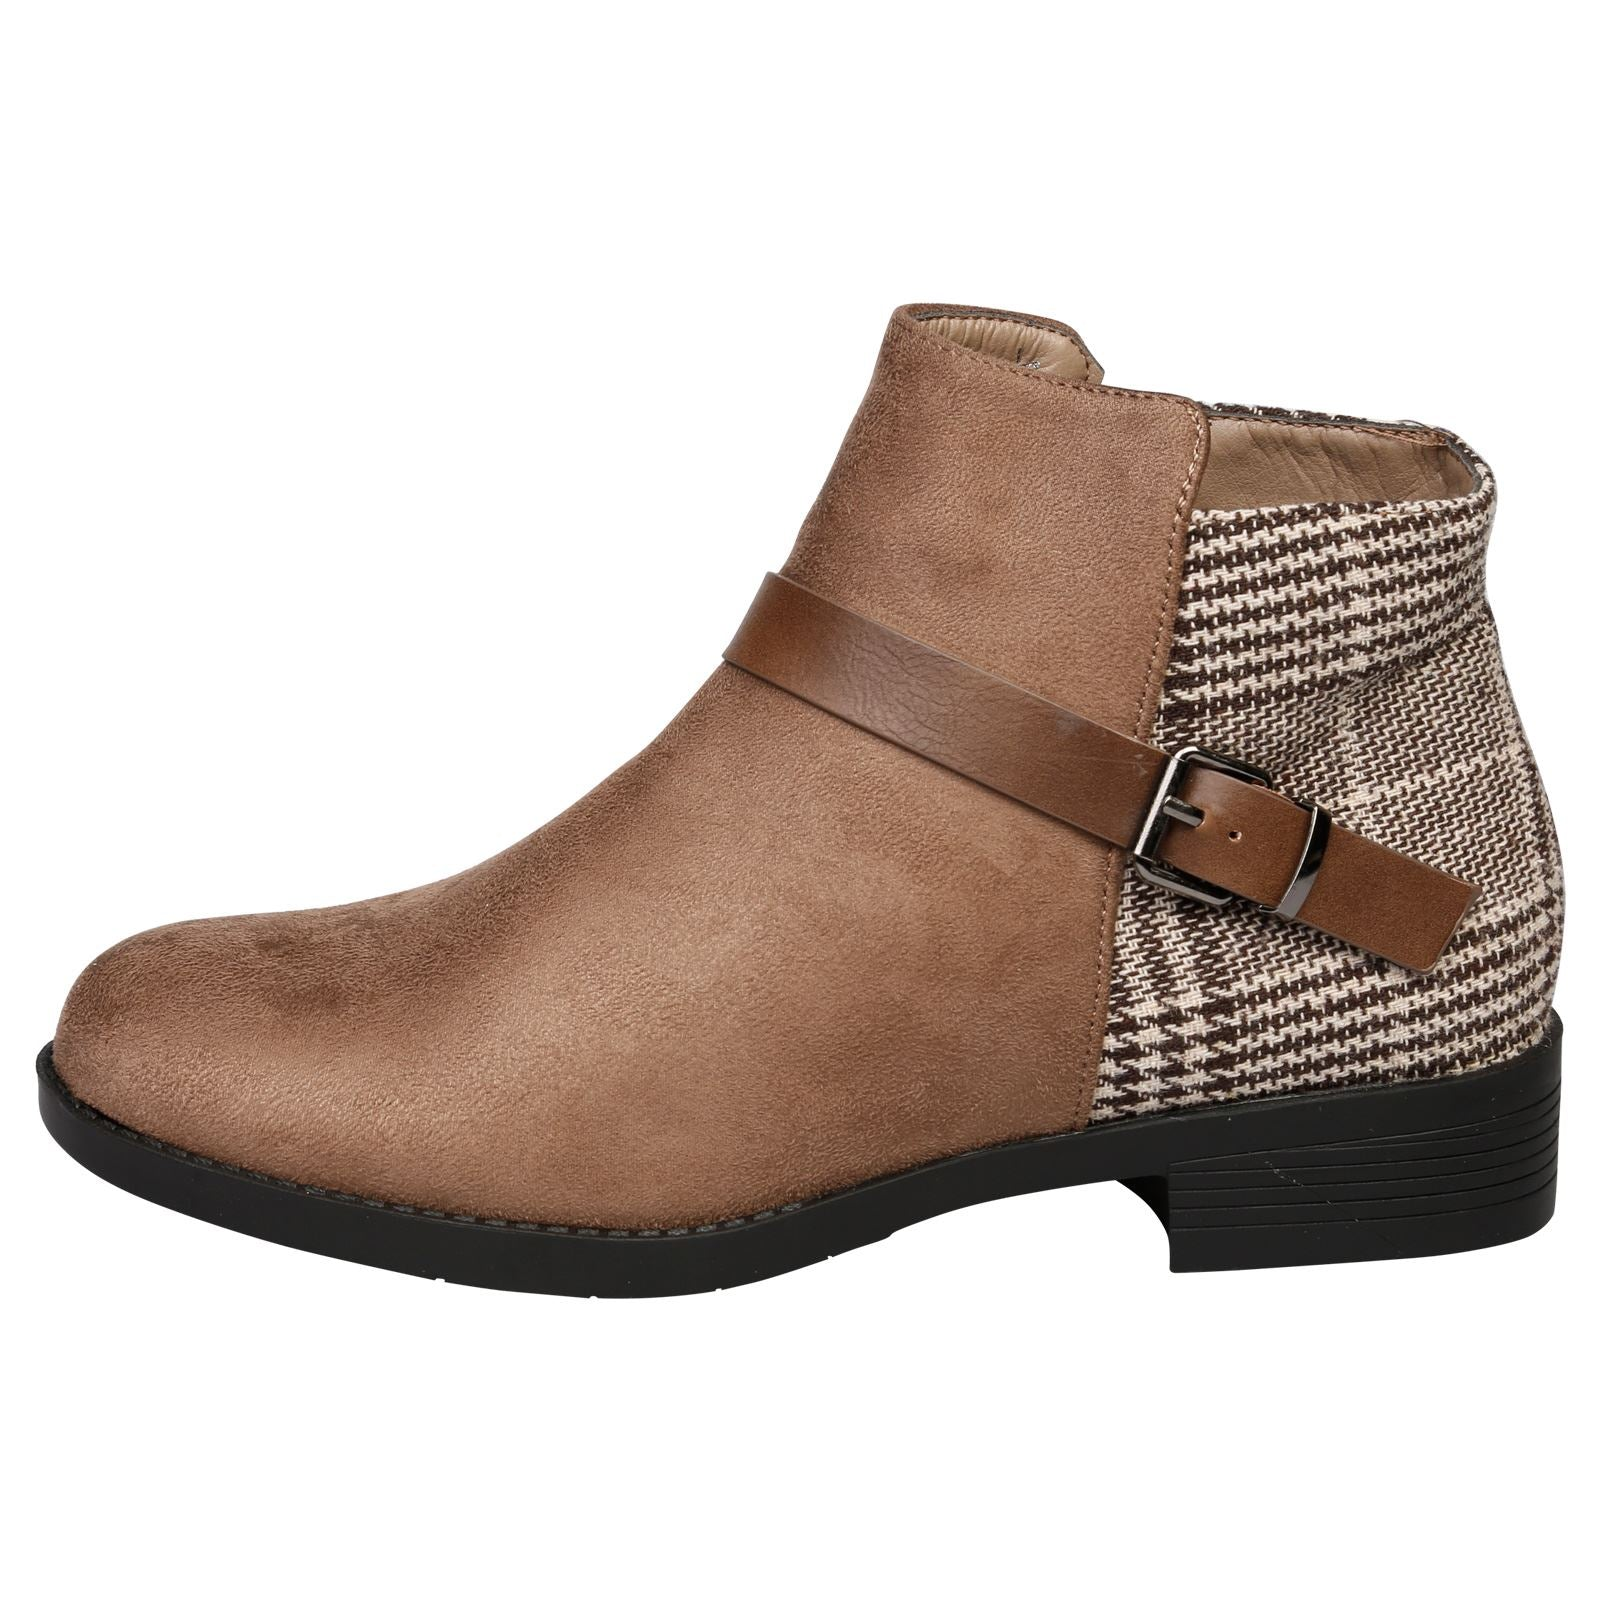 Hailee Houndstooth Ankle Boots in Khaki Brown - Feet First Fashion